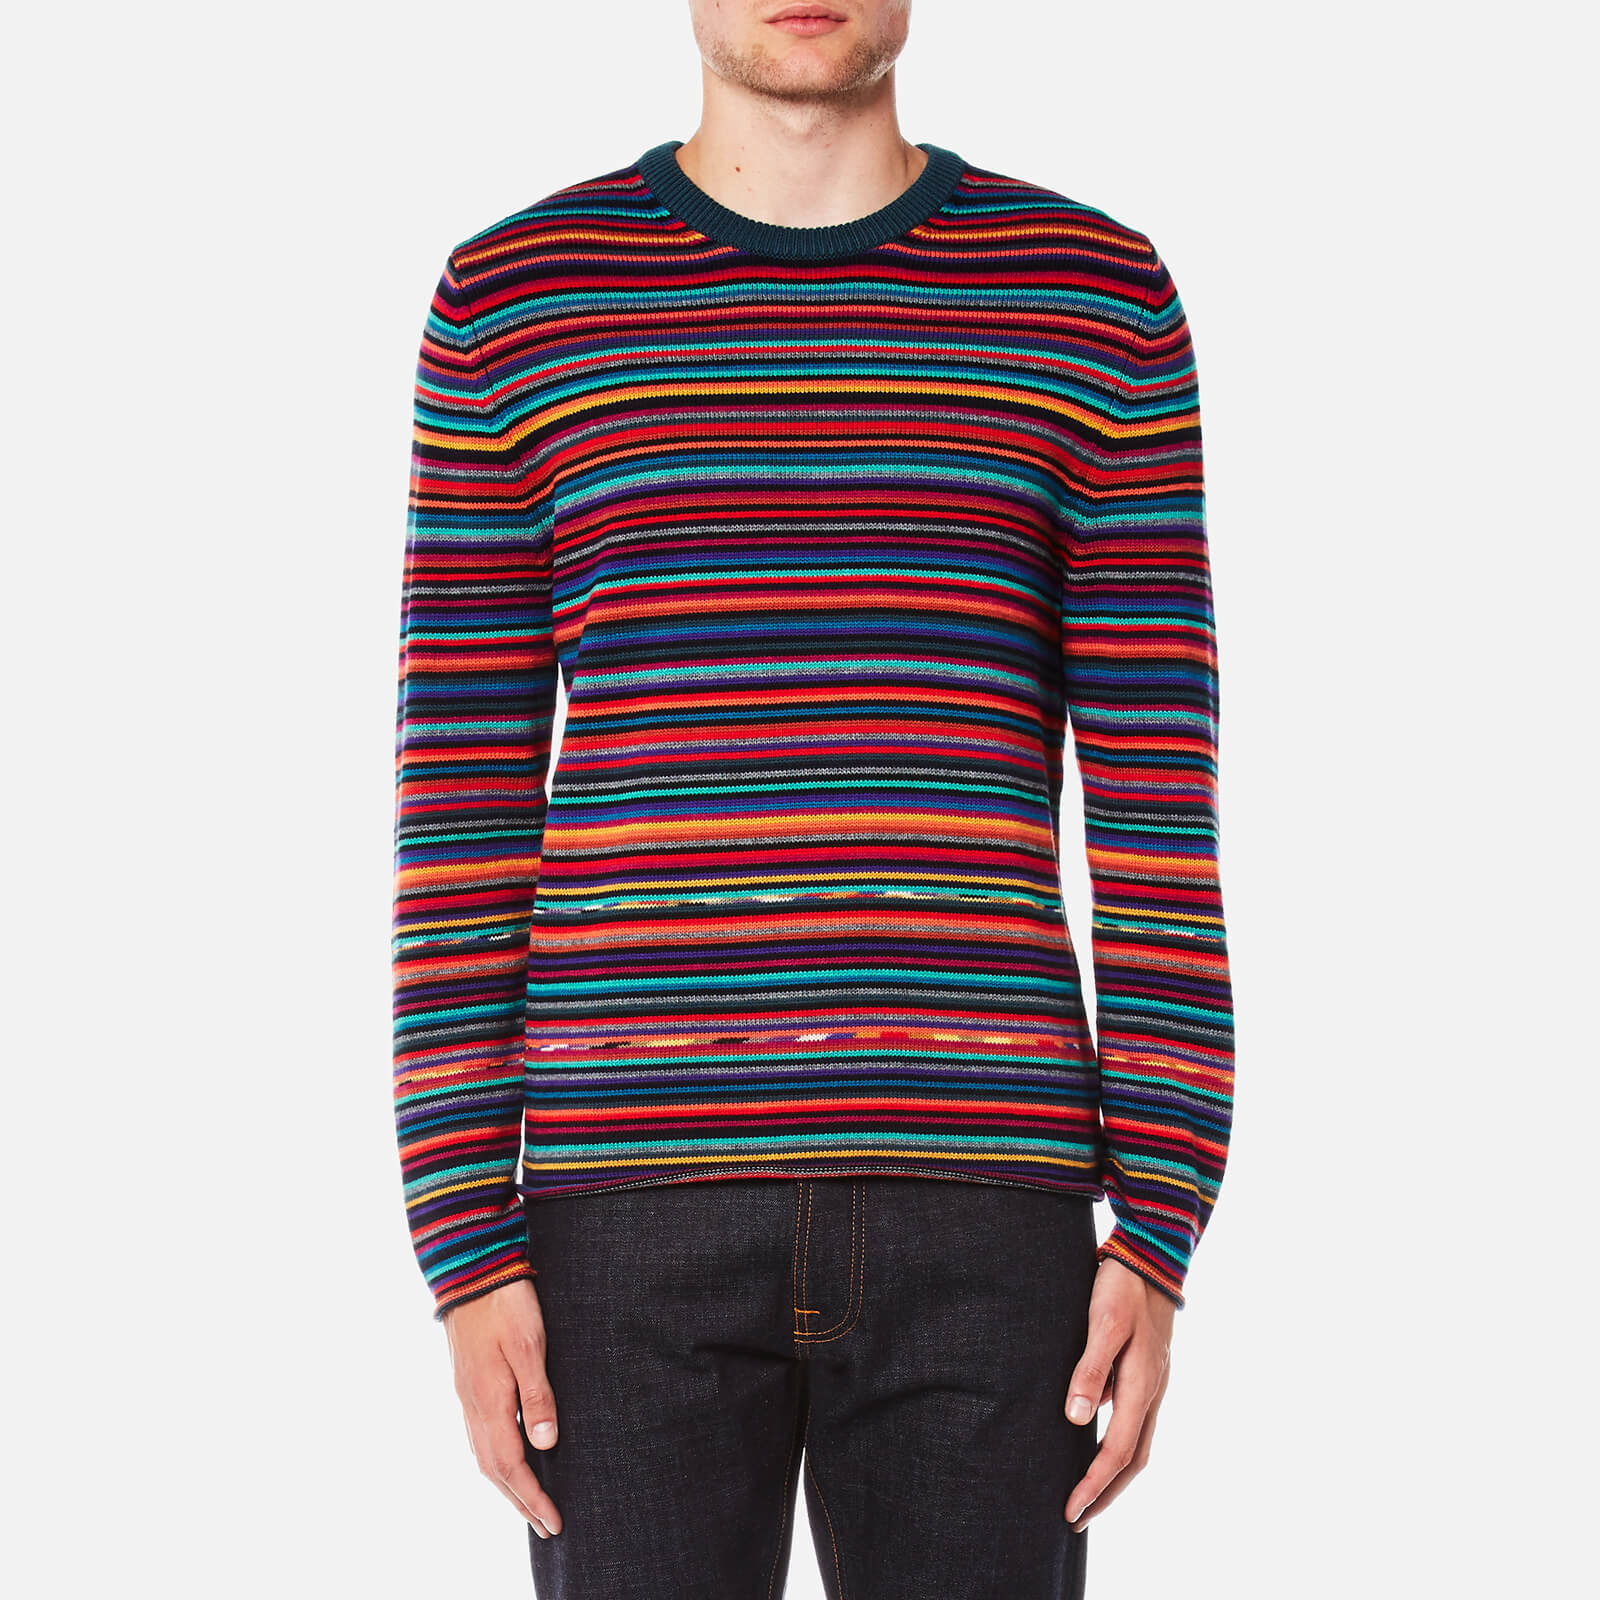 0574f6e83 PS by Paul Smith Men s All Over Stripe Knitted Jumper - Multi - Free ...